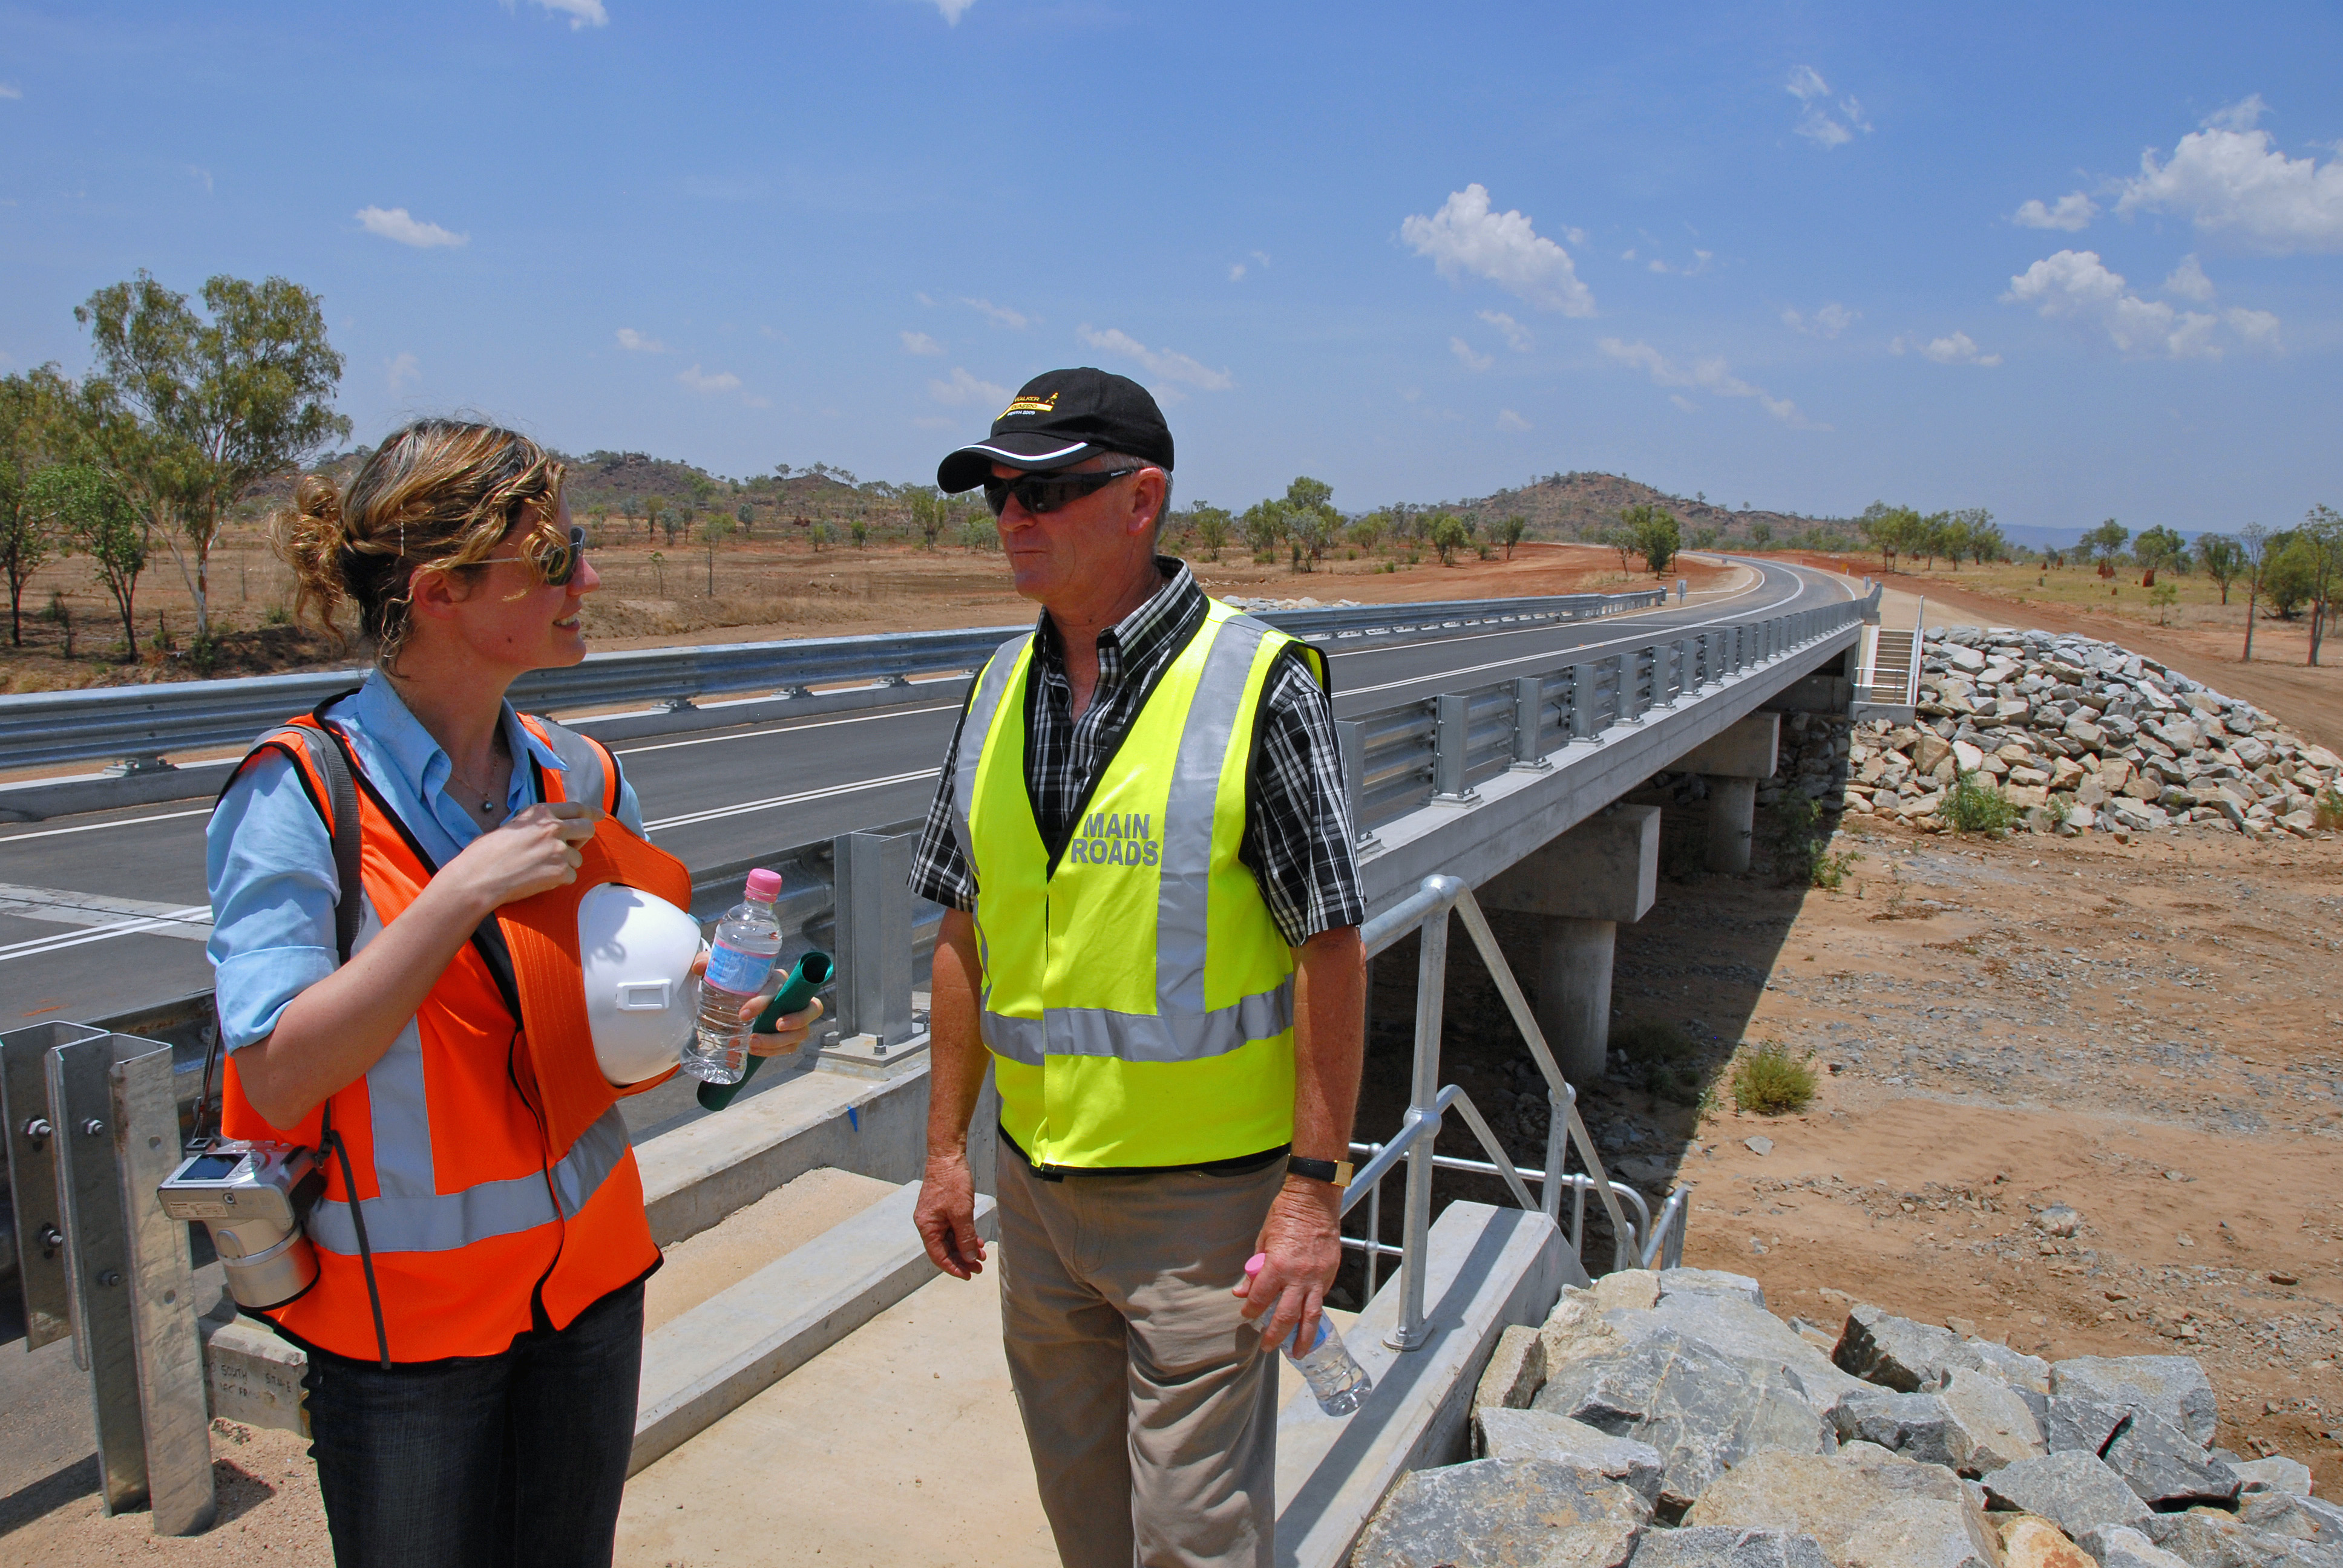 Part-time astronomer, part-time bridge builder. Giovanna finishing off a bridge on the Great Northern Highway.